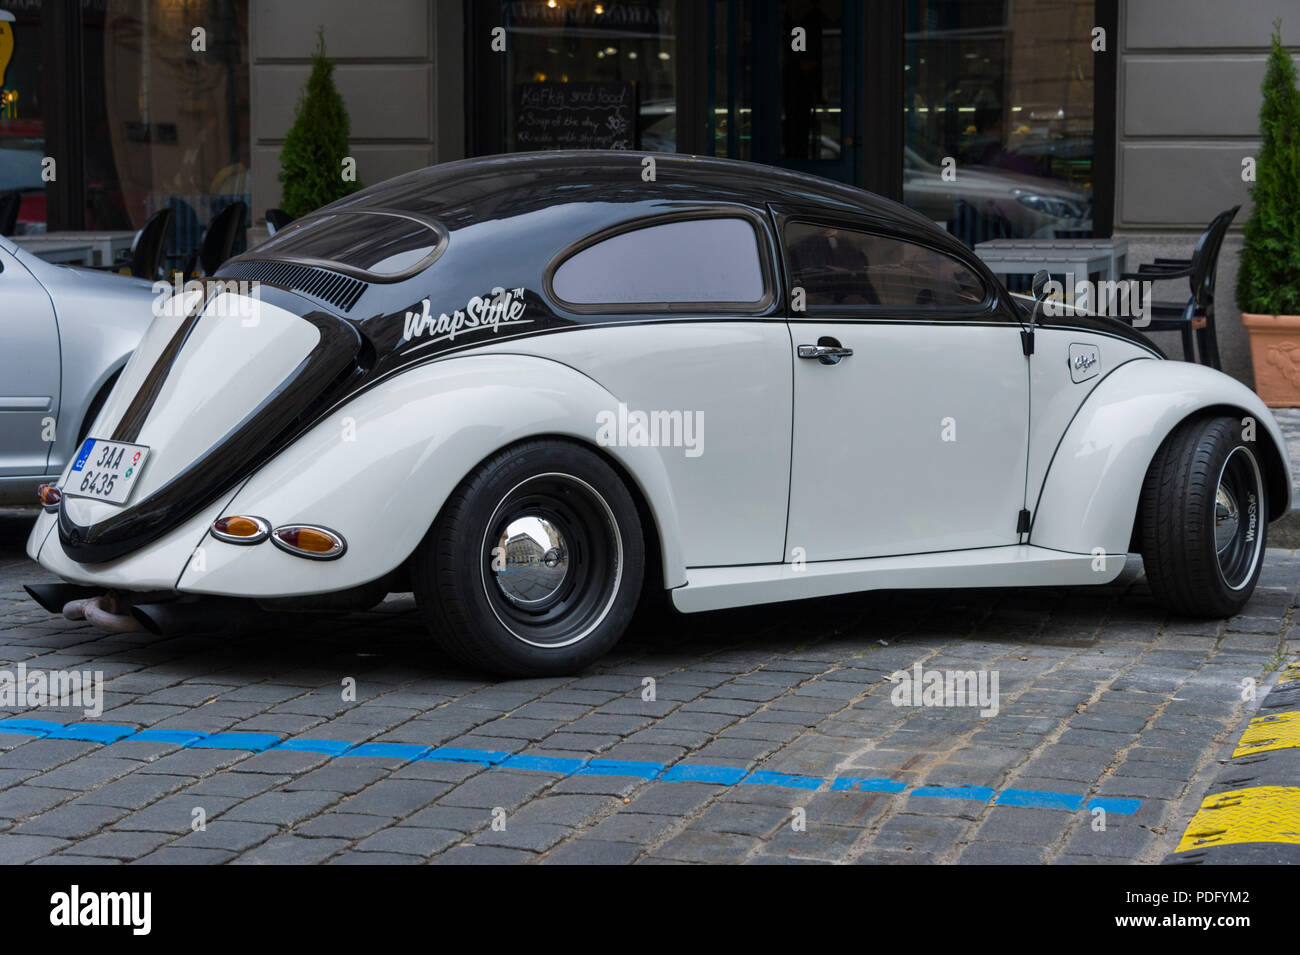 Customised Black And White Volkswagen Beetle Parked On A Street In Prague Stock Photo Alamy